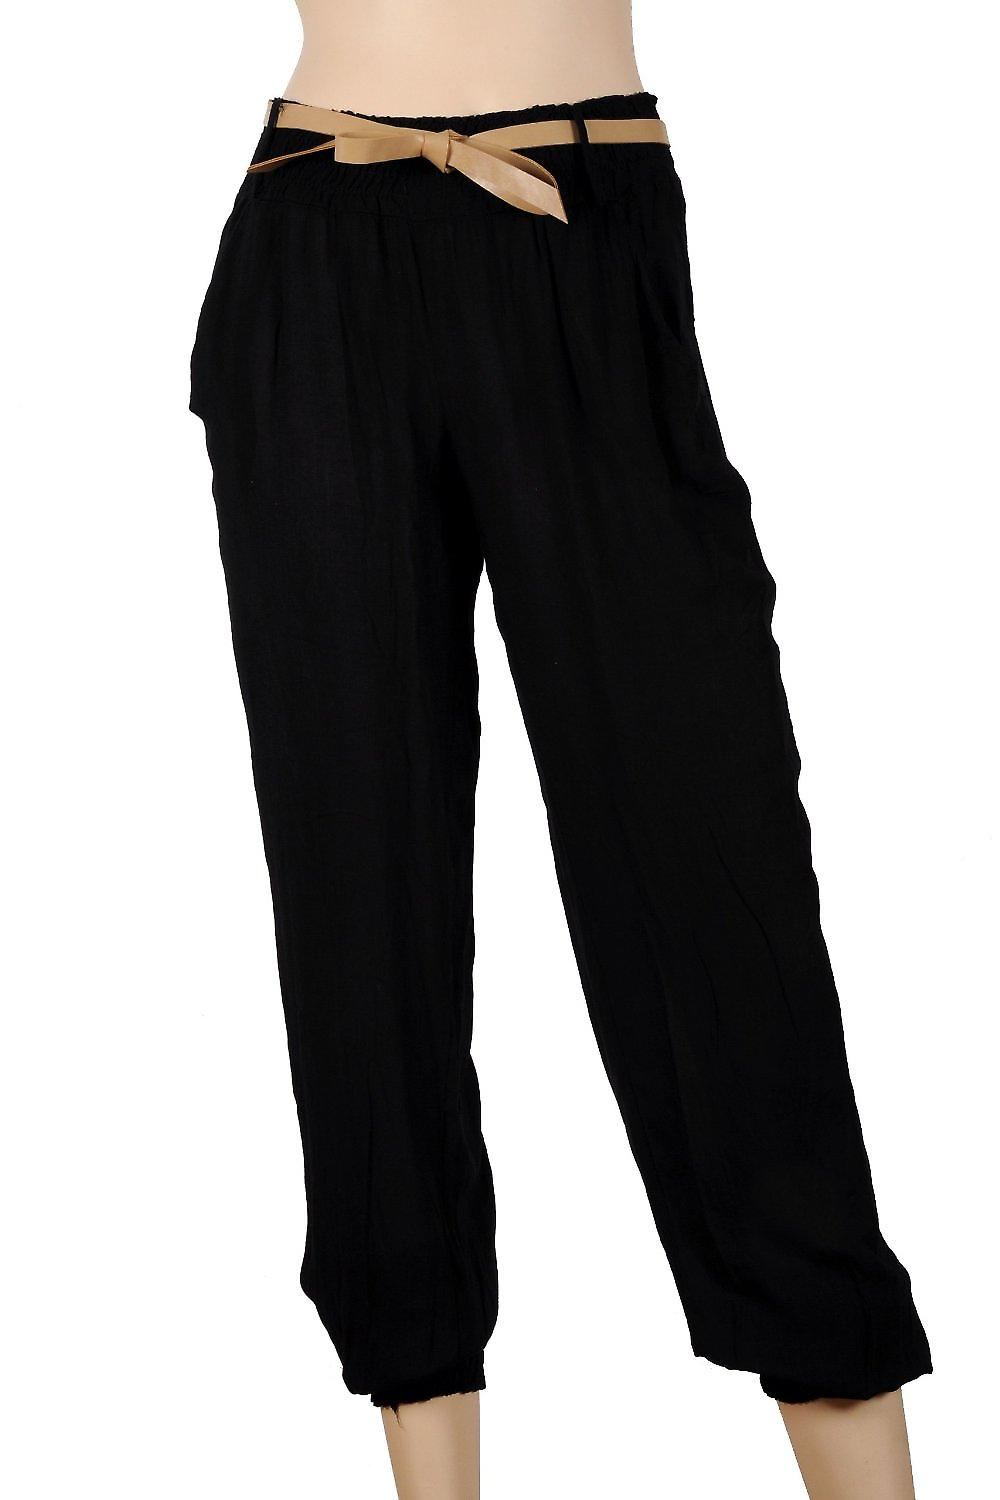 Waooh - Fashion - 100% Cotton Trousers Venice